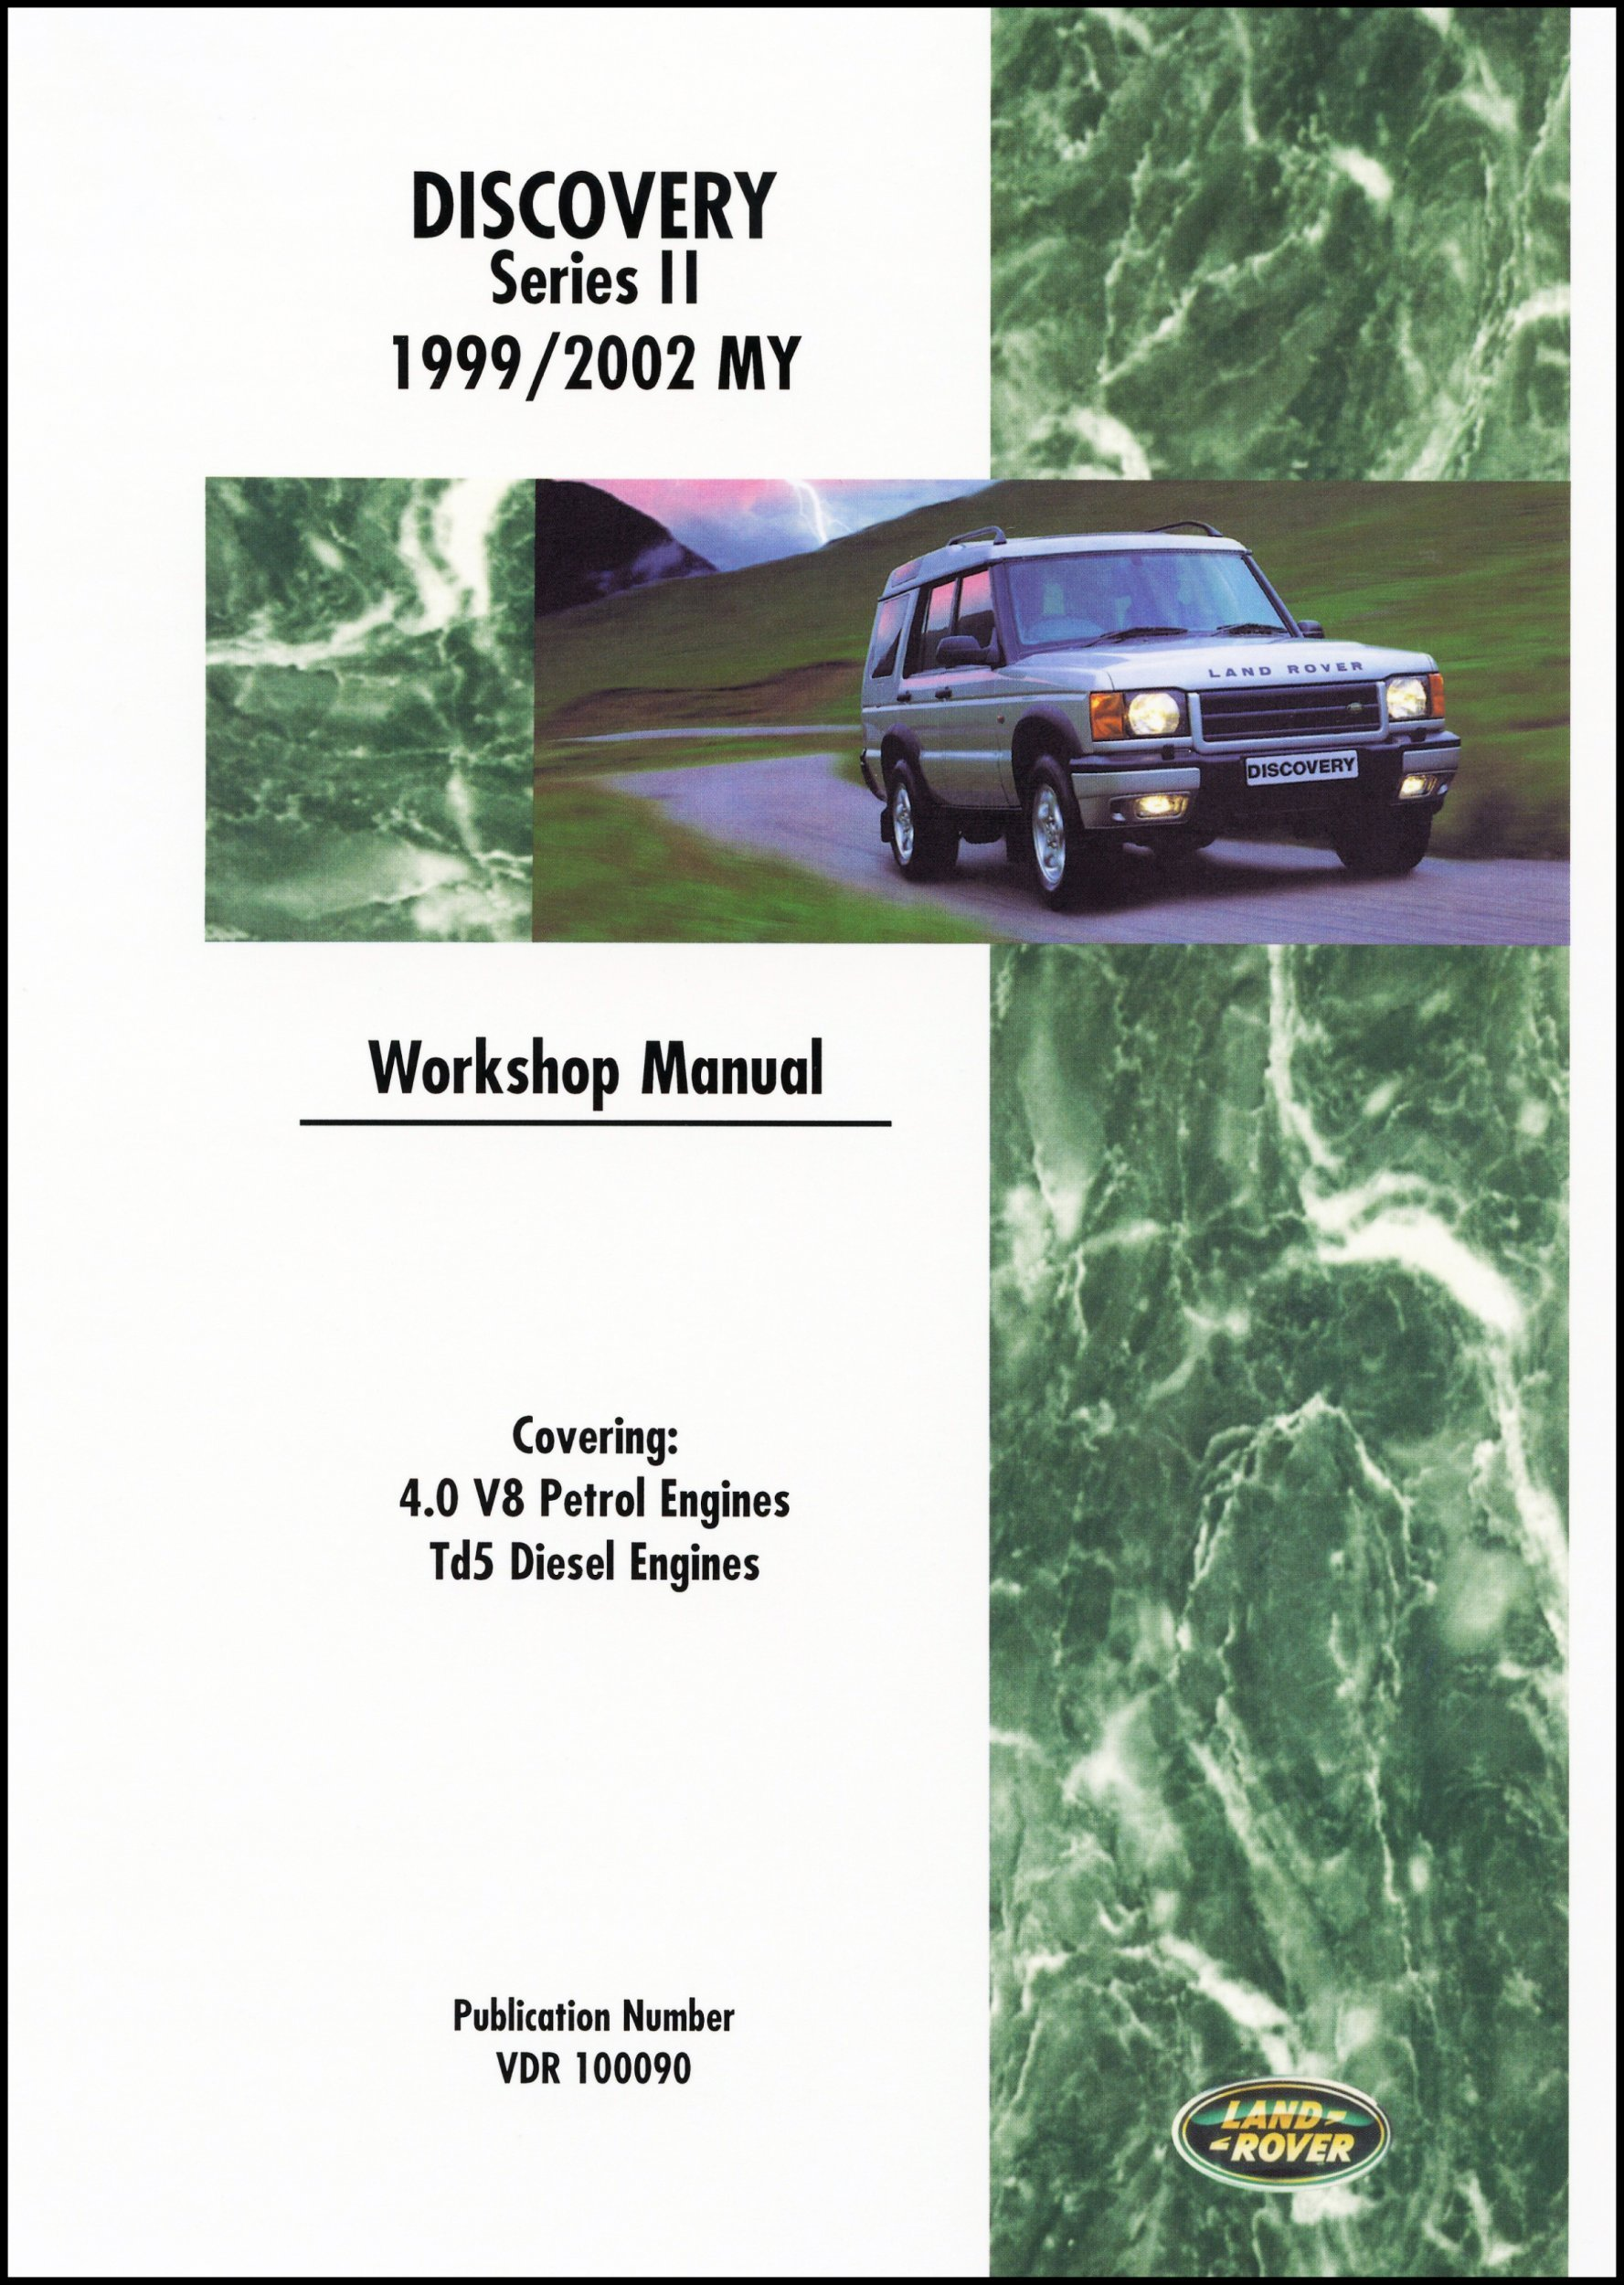 Land Rover Discovery Series II 1999-2002 4.0 V8 Petrol and Td5 Diesel  Engines (Land Rover Workshop Manuals): Amazon.co.uk: Land Rover Ltd:  9781855206182: ...